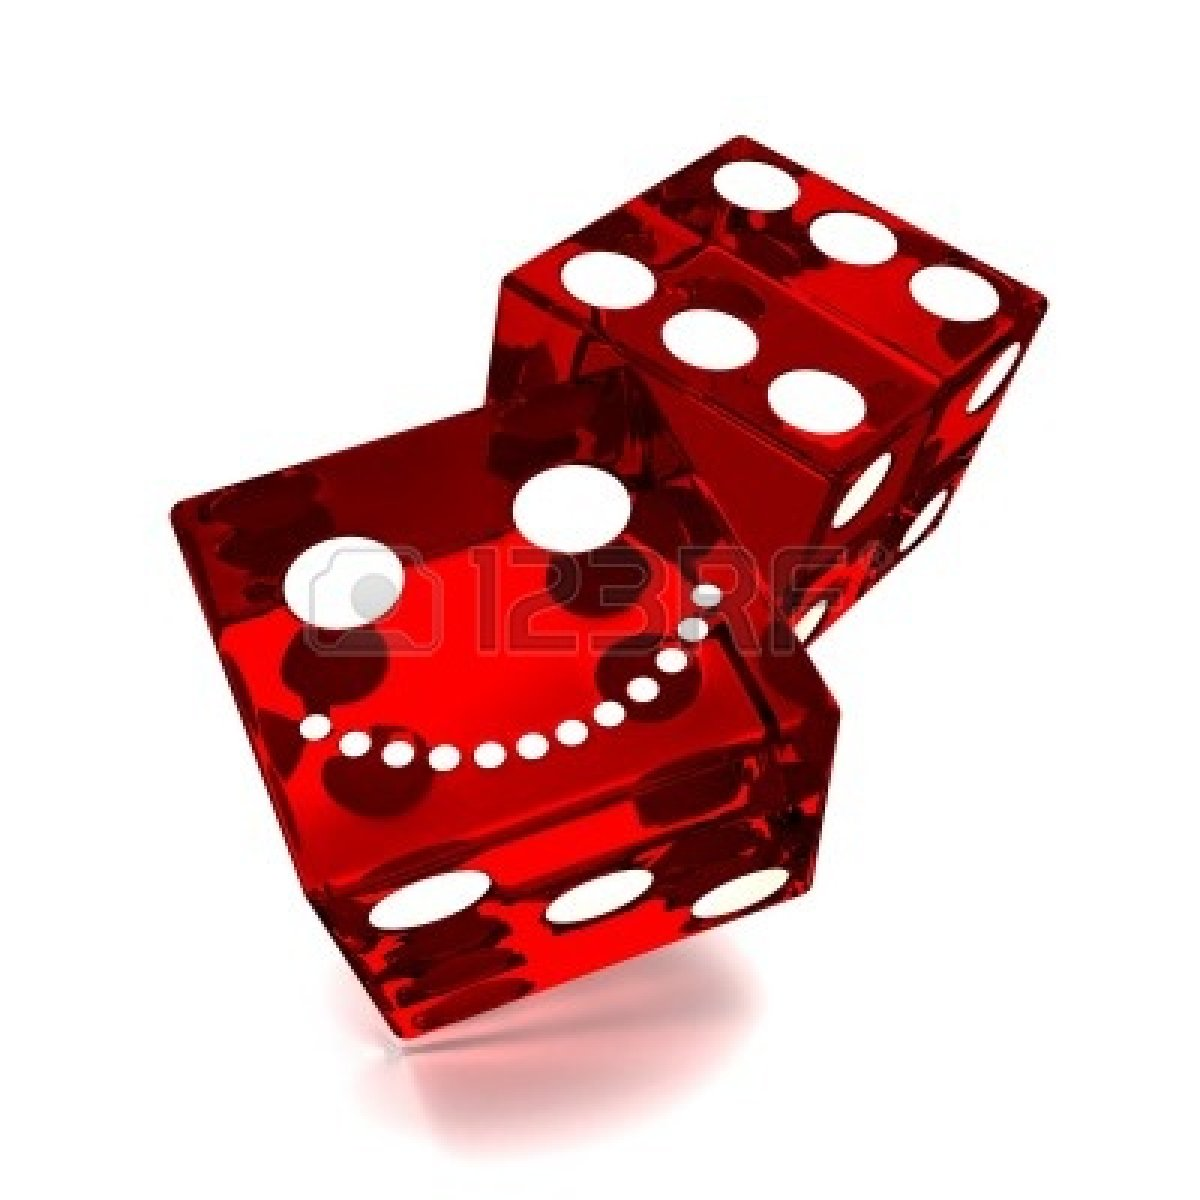 1200x1200 Bunco Dice Clipart 10516085 Red Dice On White Background Jpg